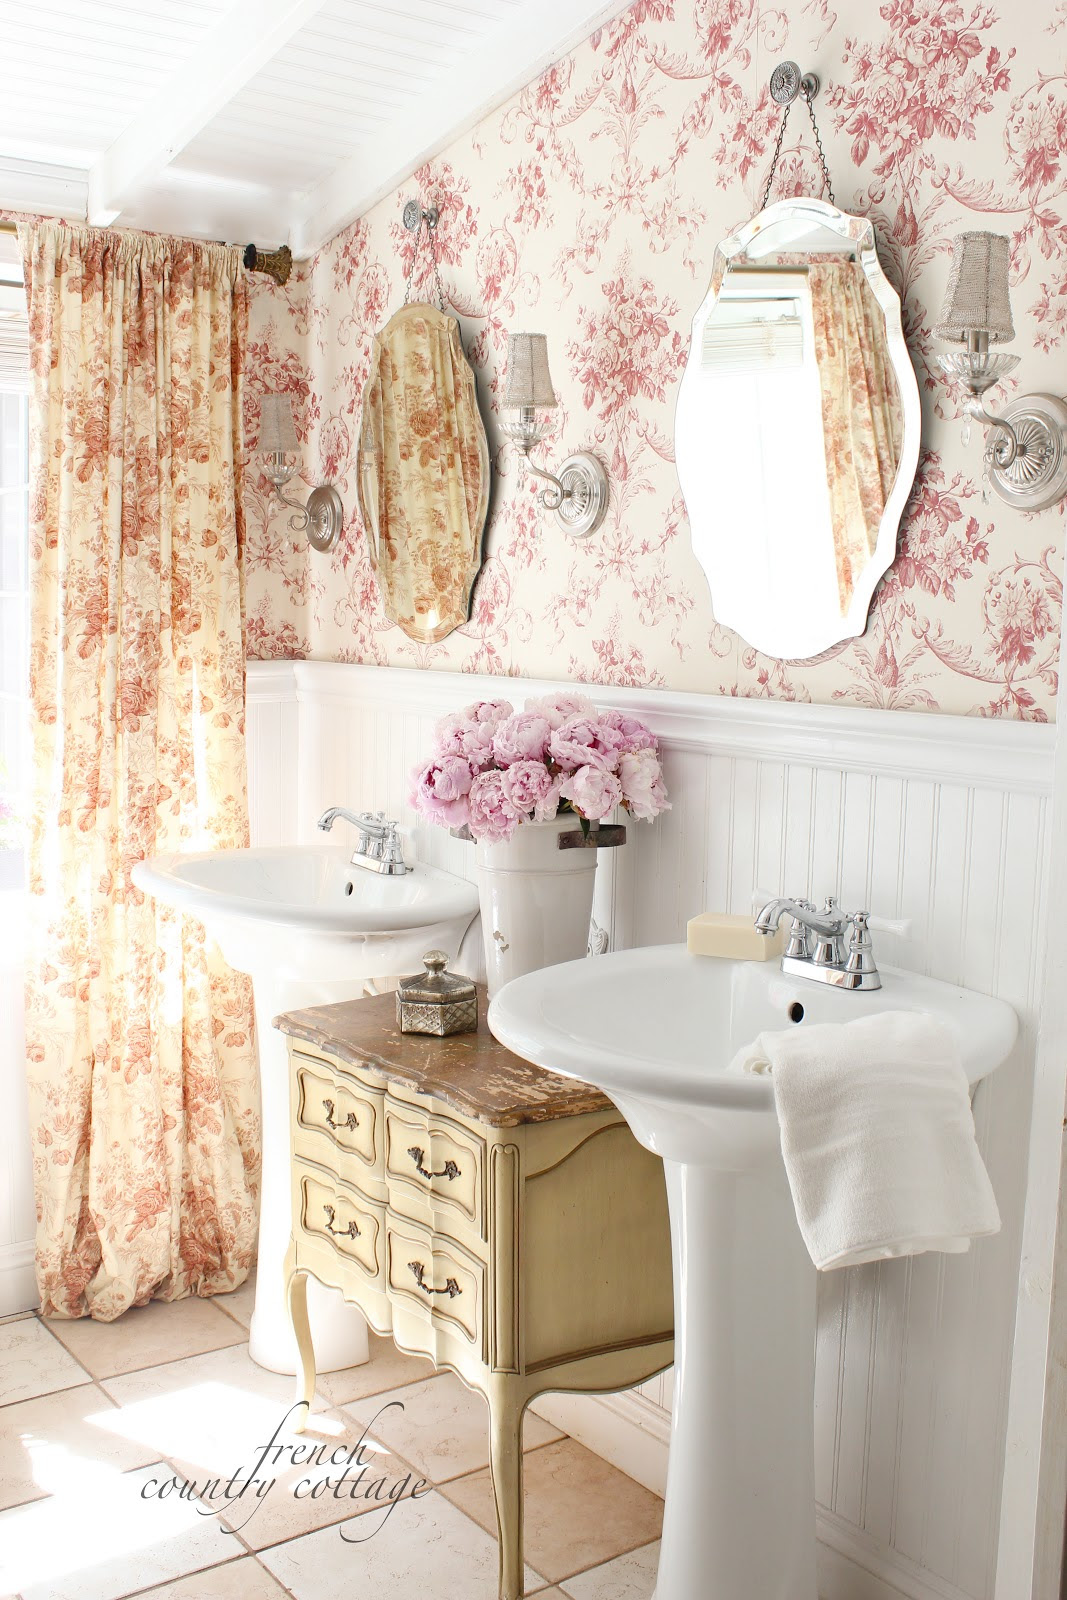 French Country Bathroom Decorating Ideas   modern architecture